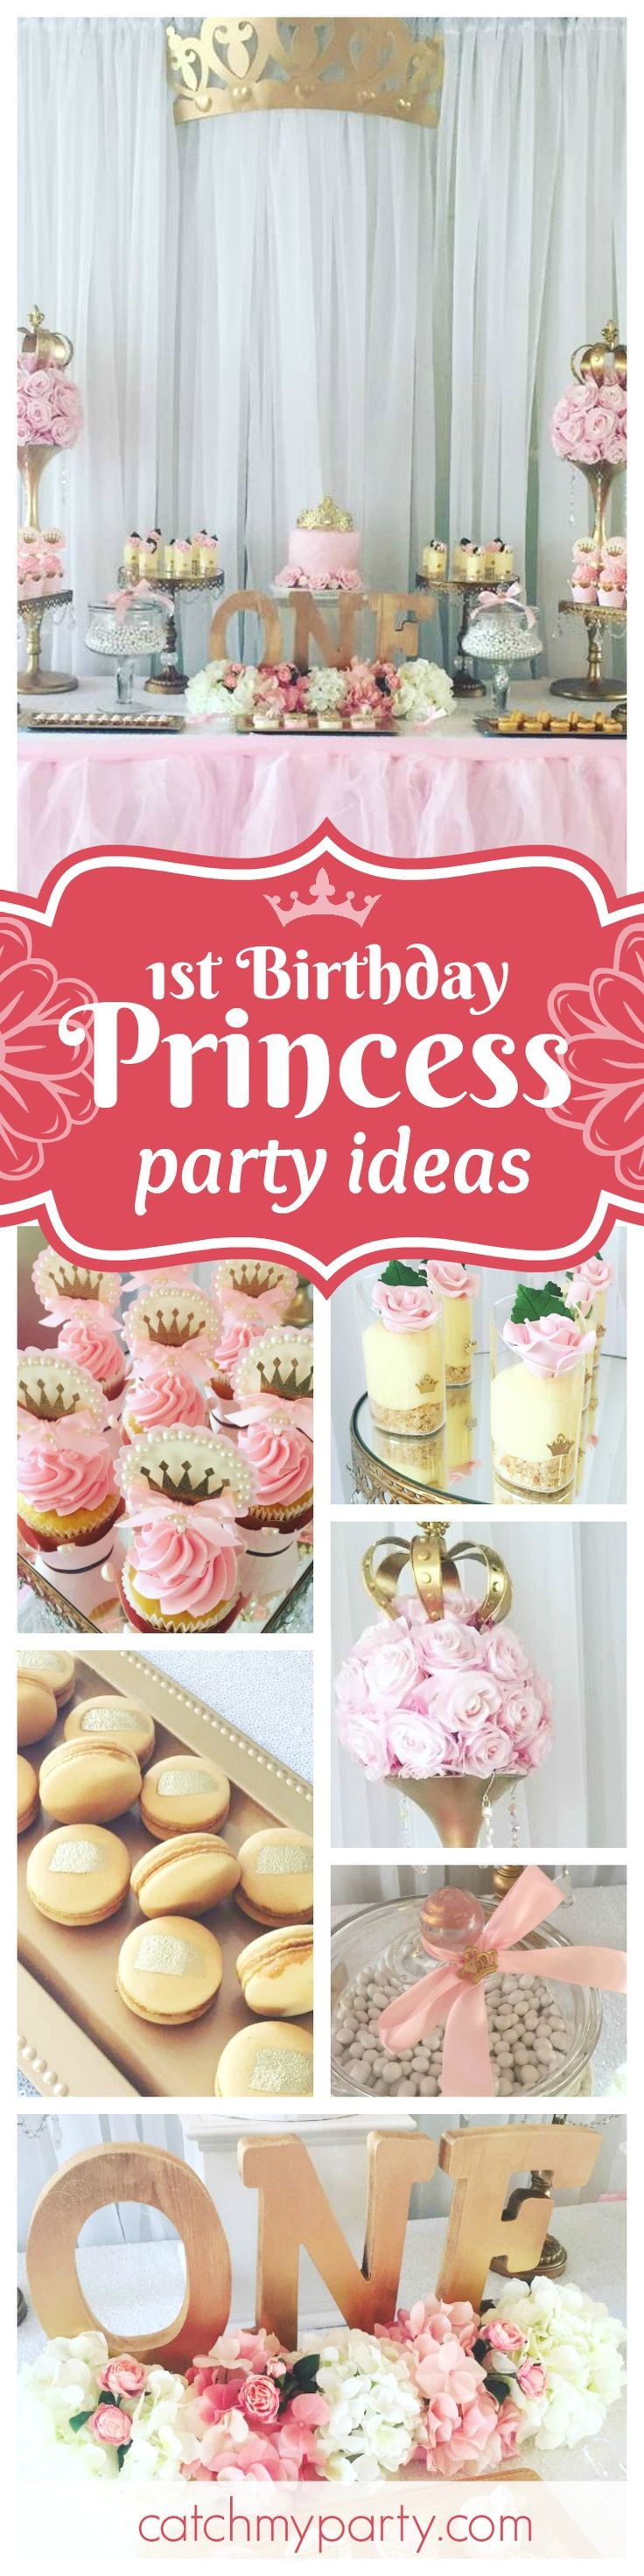 You too with feel like a princess at this gorgeous Princess 1st birthday. The dessert table is beautiful!! See more party ideas and share yours at CatchMyParty.com